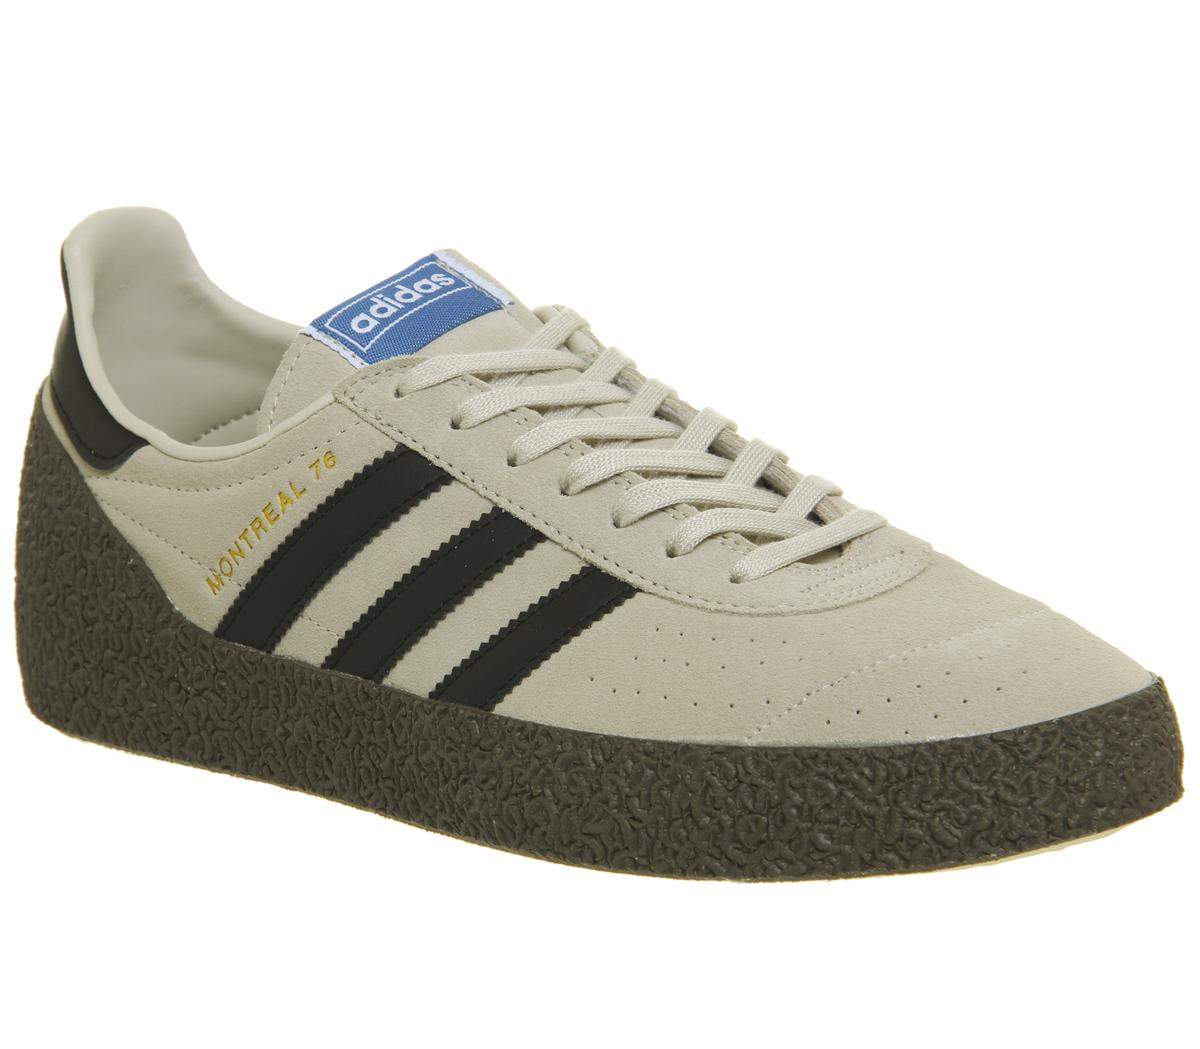 adidas Montreal 76 Trainers Clear Brown